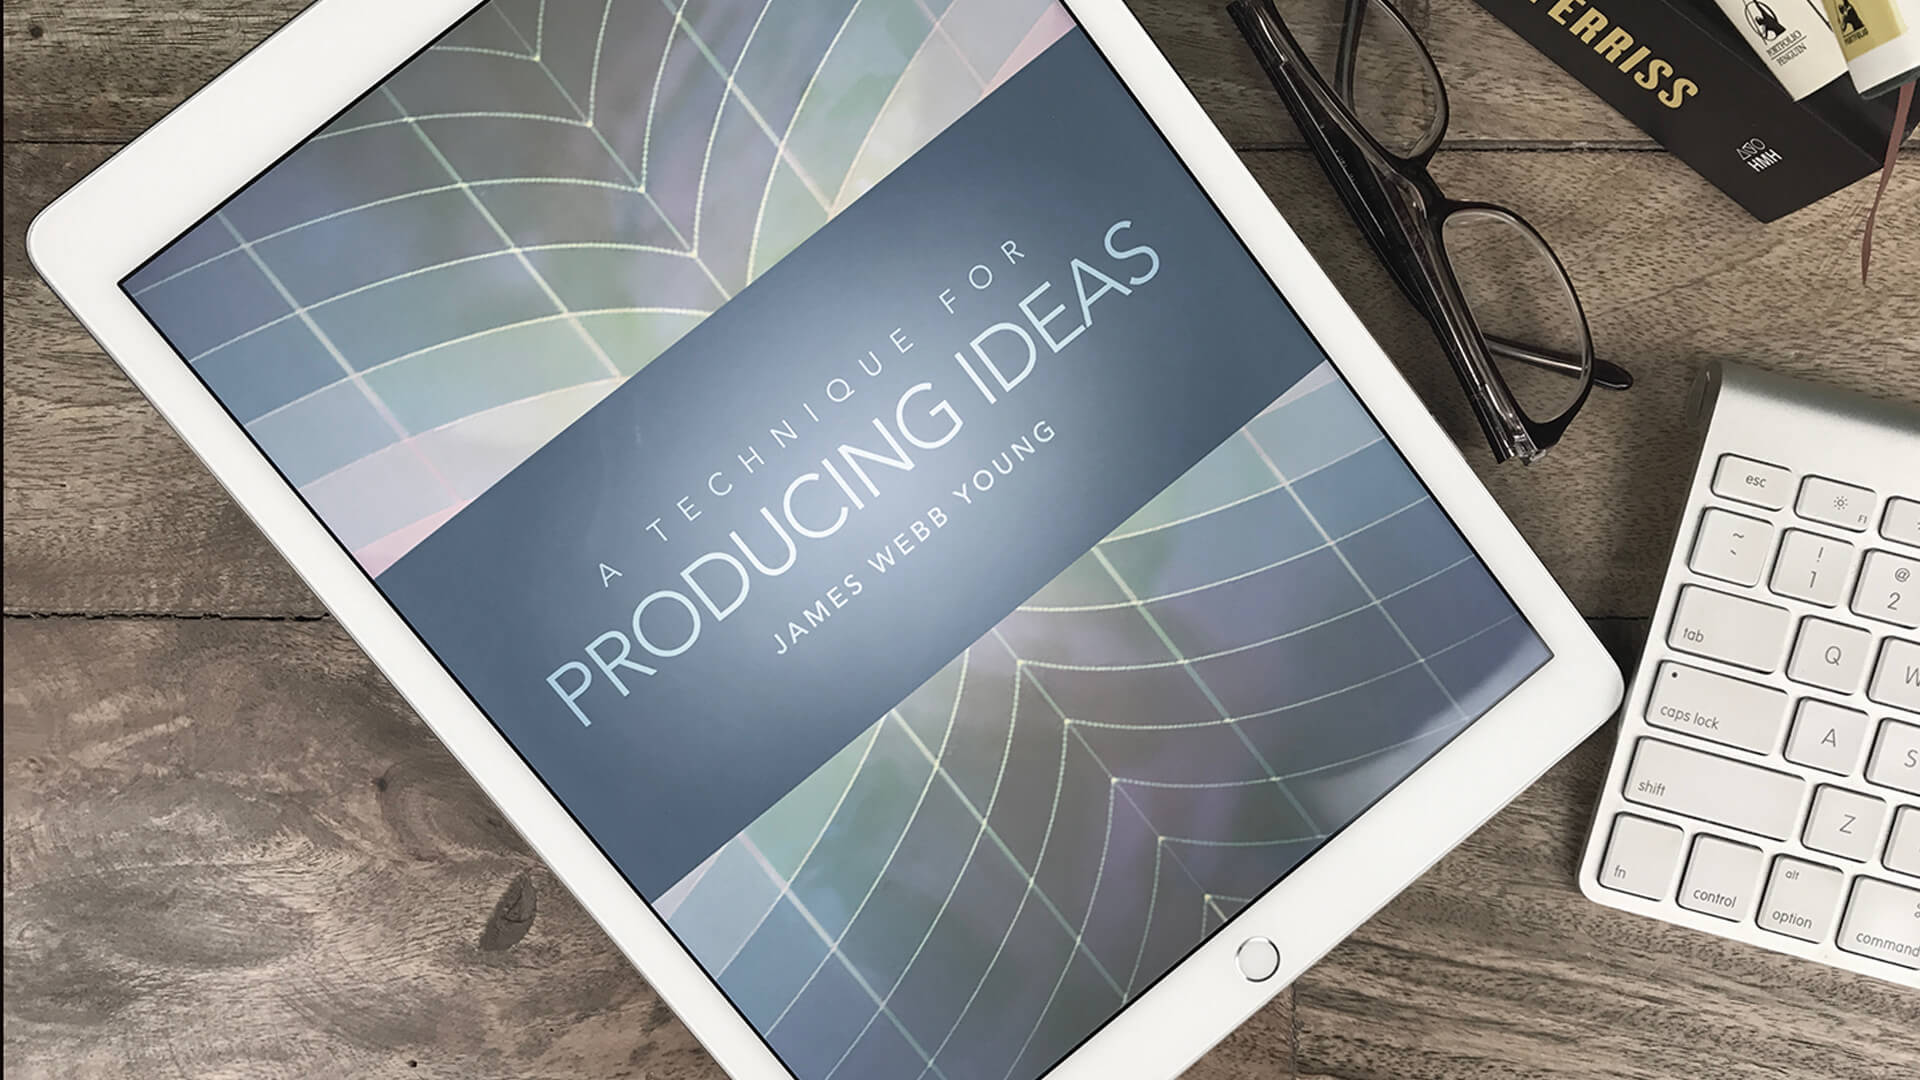 Book Review: A Technique for Producing Ideas